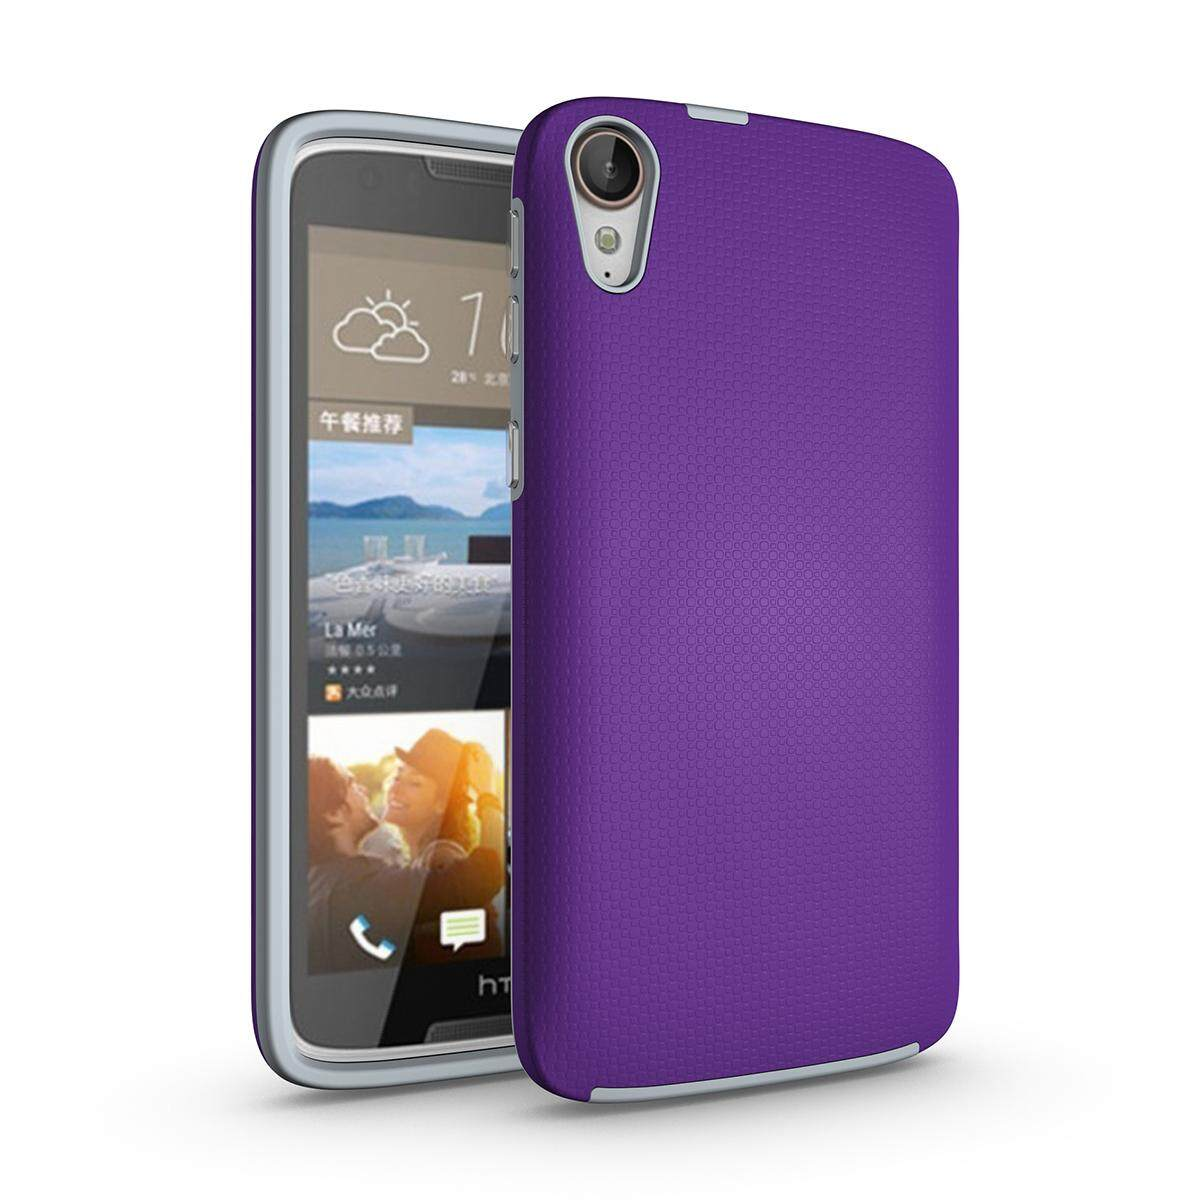 Meishengkai Case For HTC Desire 828 Anti Slip And Shatter Proof Hard PC + TPU 2 in 1 Protective Case Cover Purple - intl